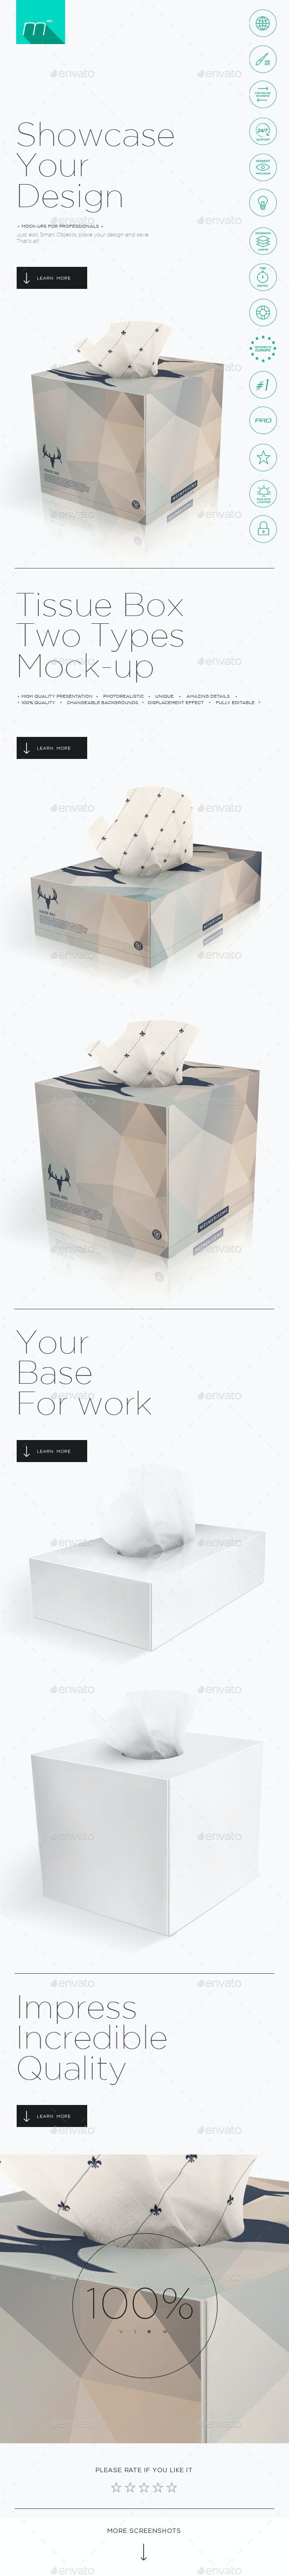 2x Tissue Box Mock-up - Miscellaneous Product Mock-Ups